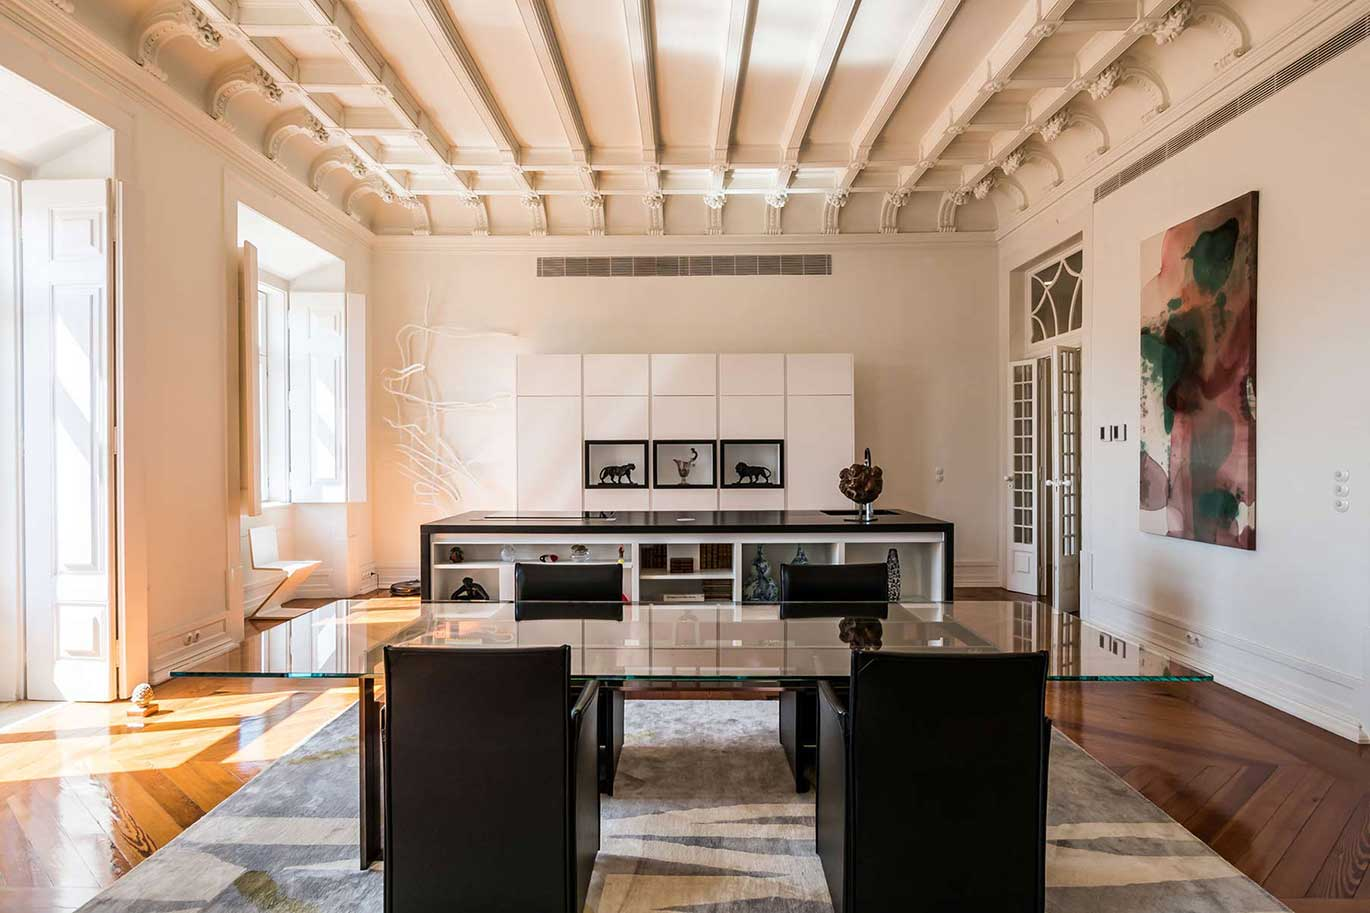 Lisboa - Portugal - Apartment , 4 rooms, 3 bedrooms - Slideshow Picture 5